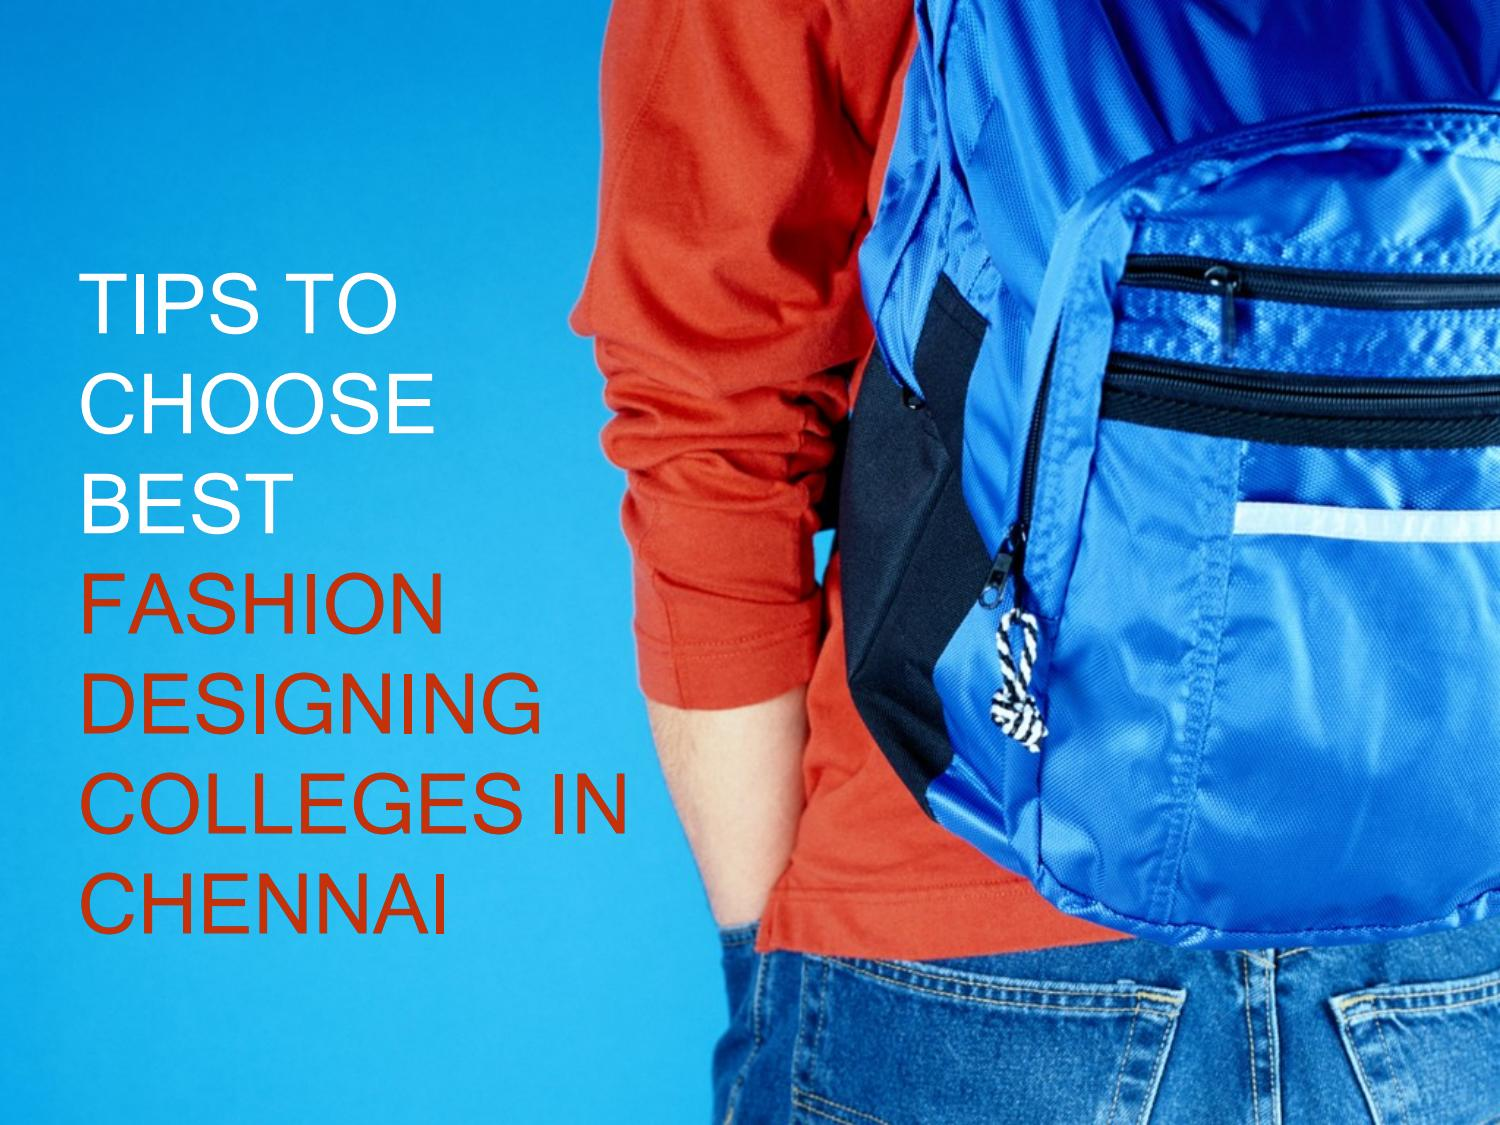 Tips To Choose Best Fashion Designing Colleges In Chennai By Lucyleoparker Issuu